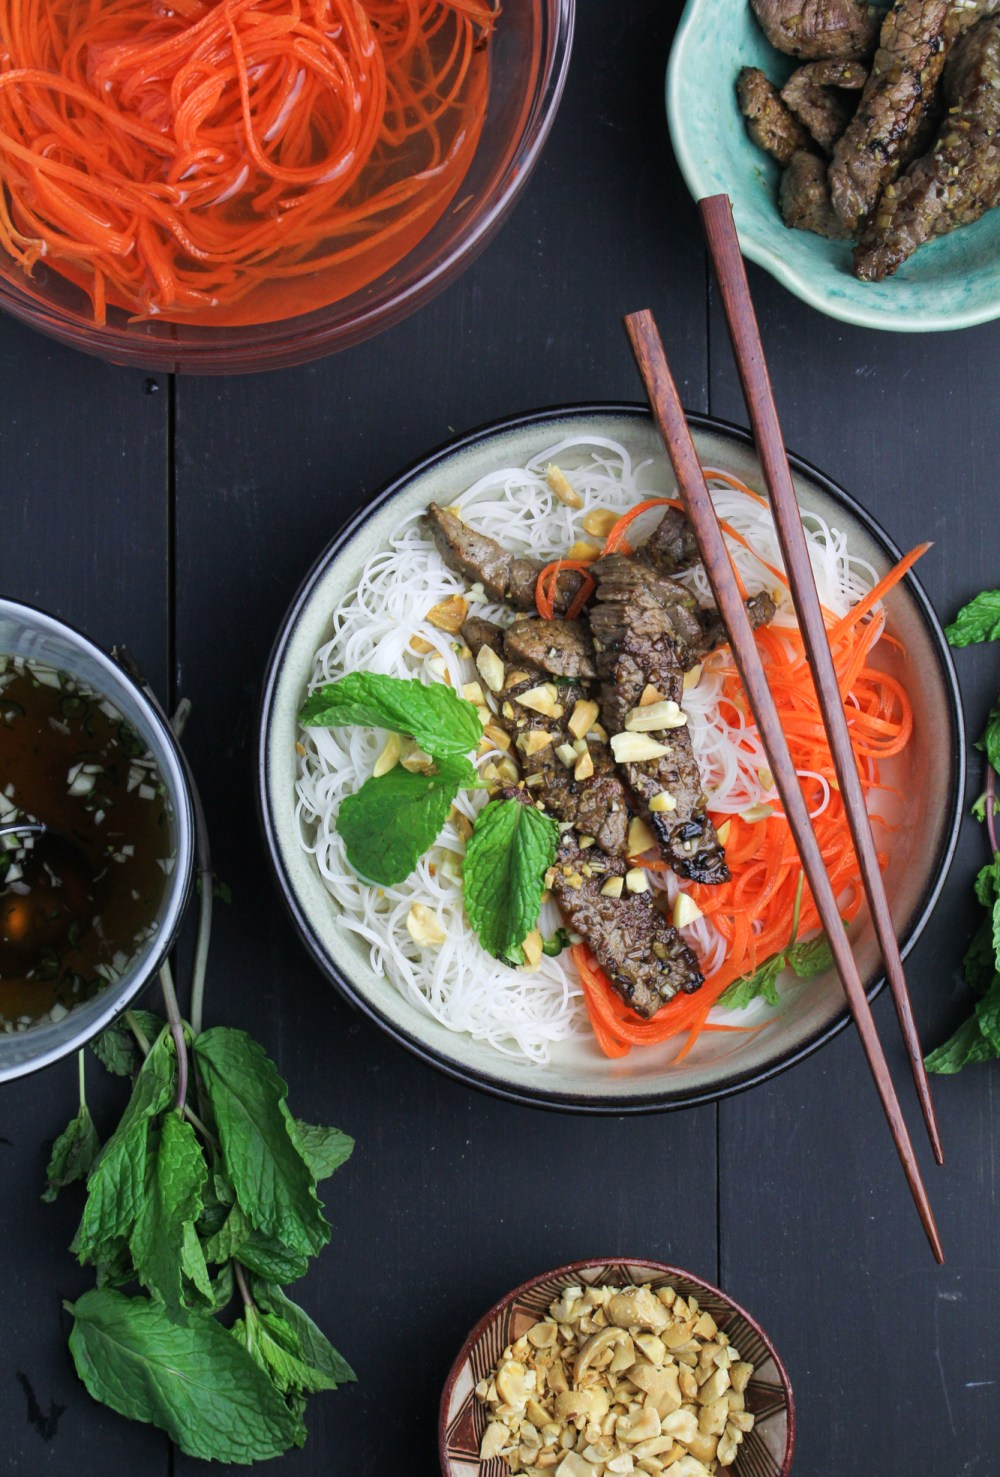 Bún Bò Xào - Vietnamese Rice Noodle Salad with Lemongrass Beef